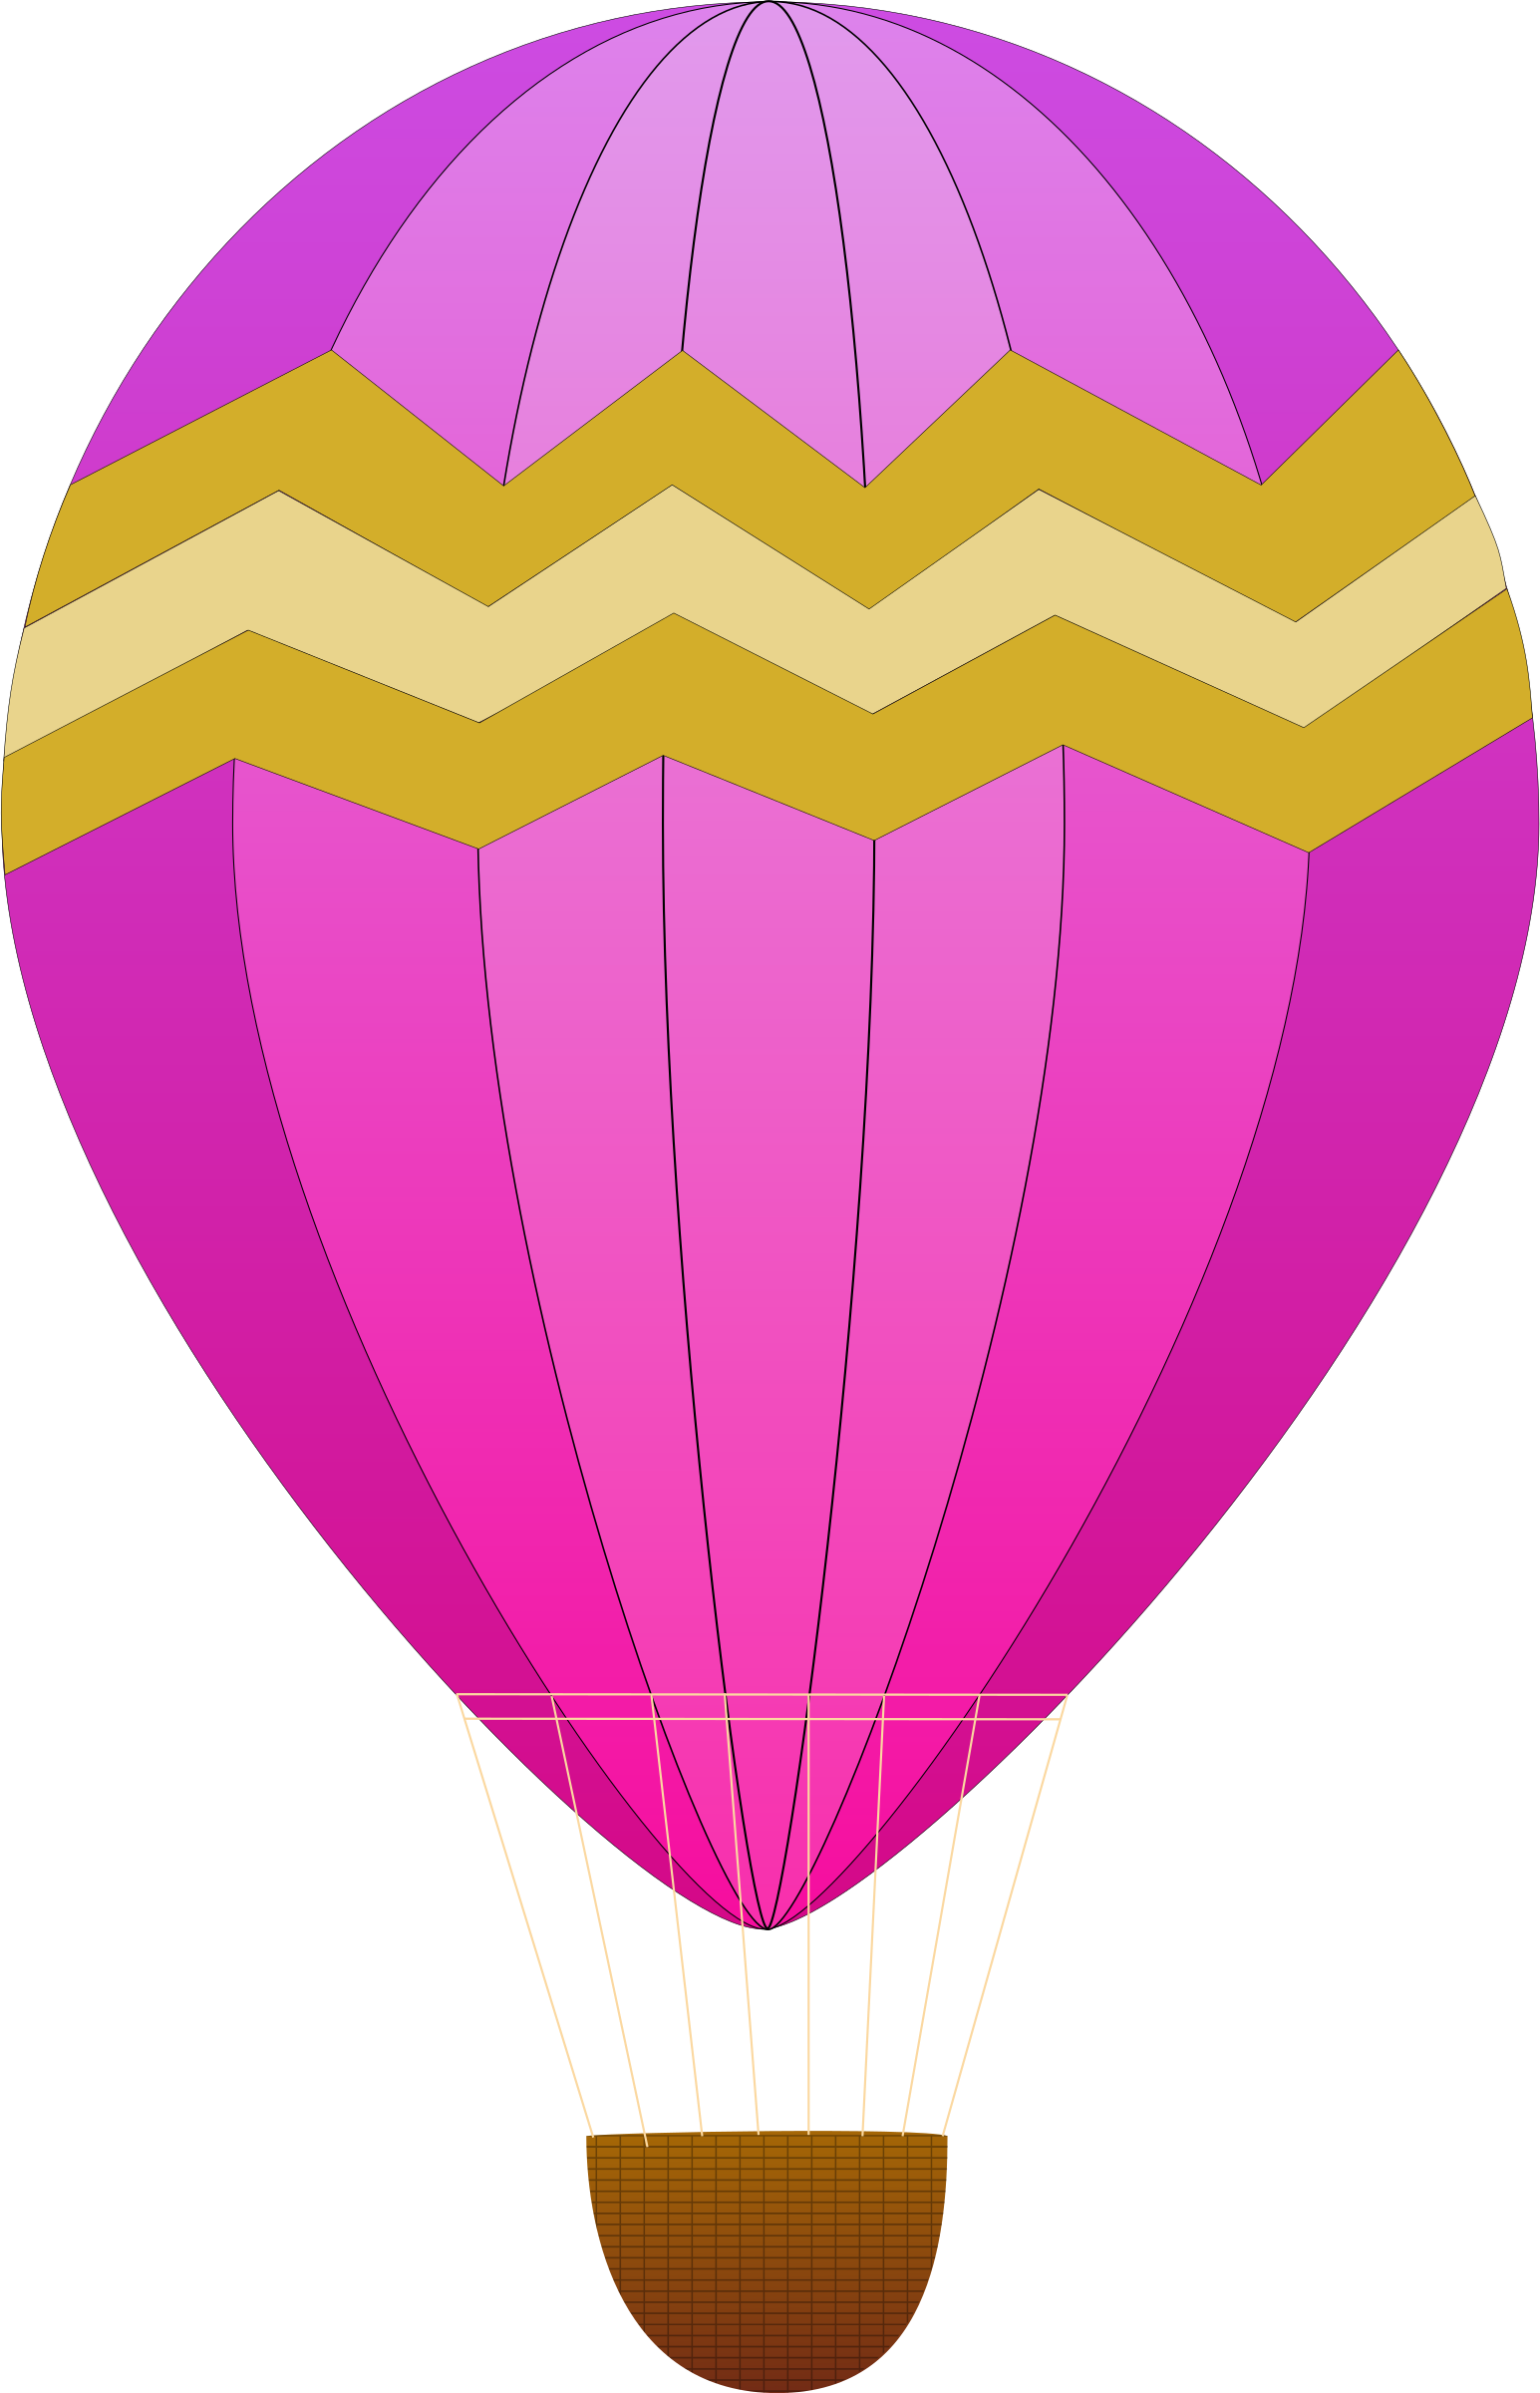 Hot Air Balloons by maidis